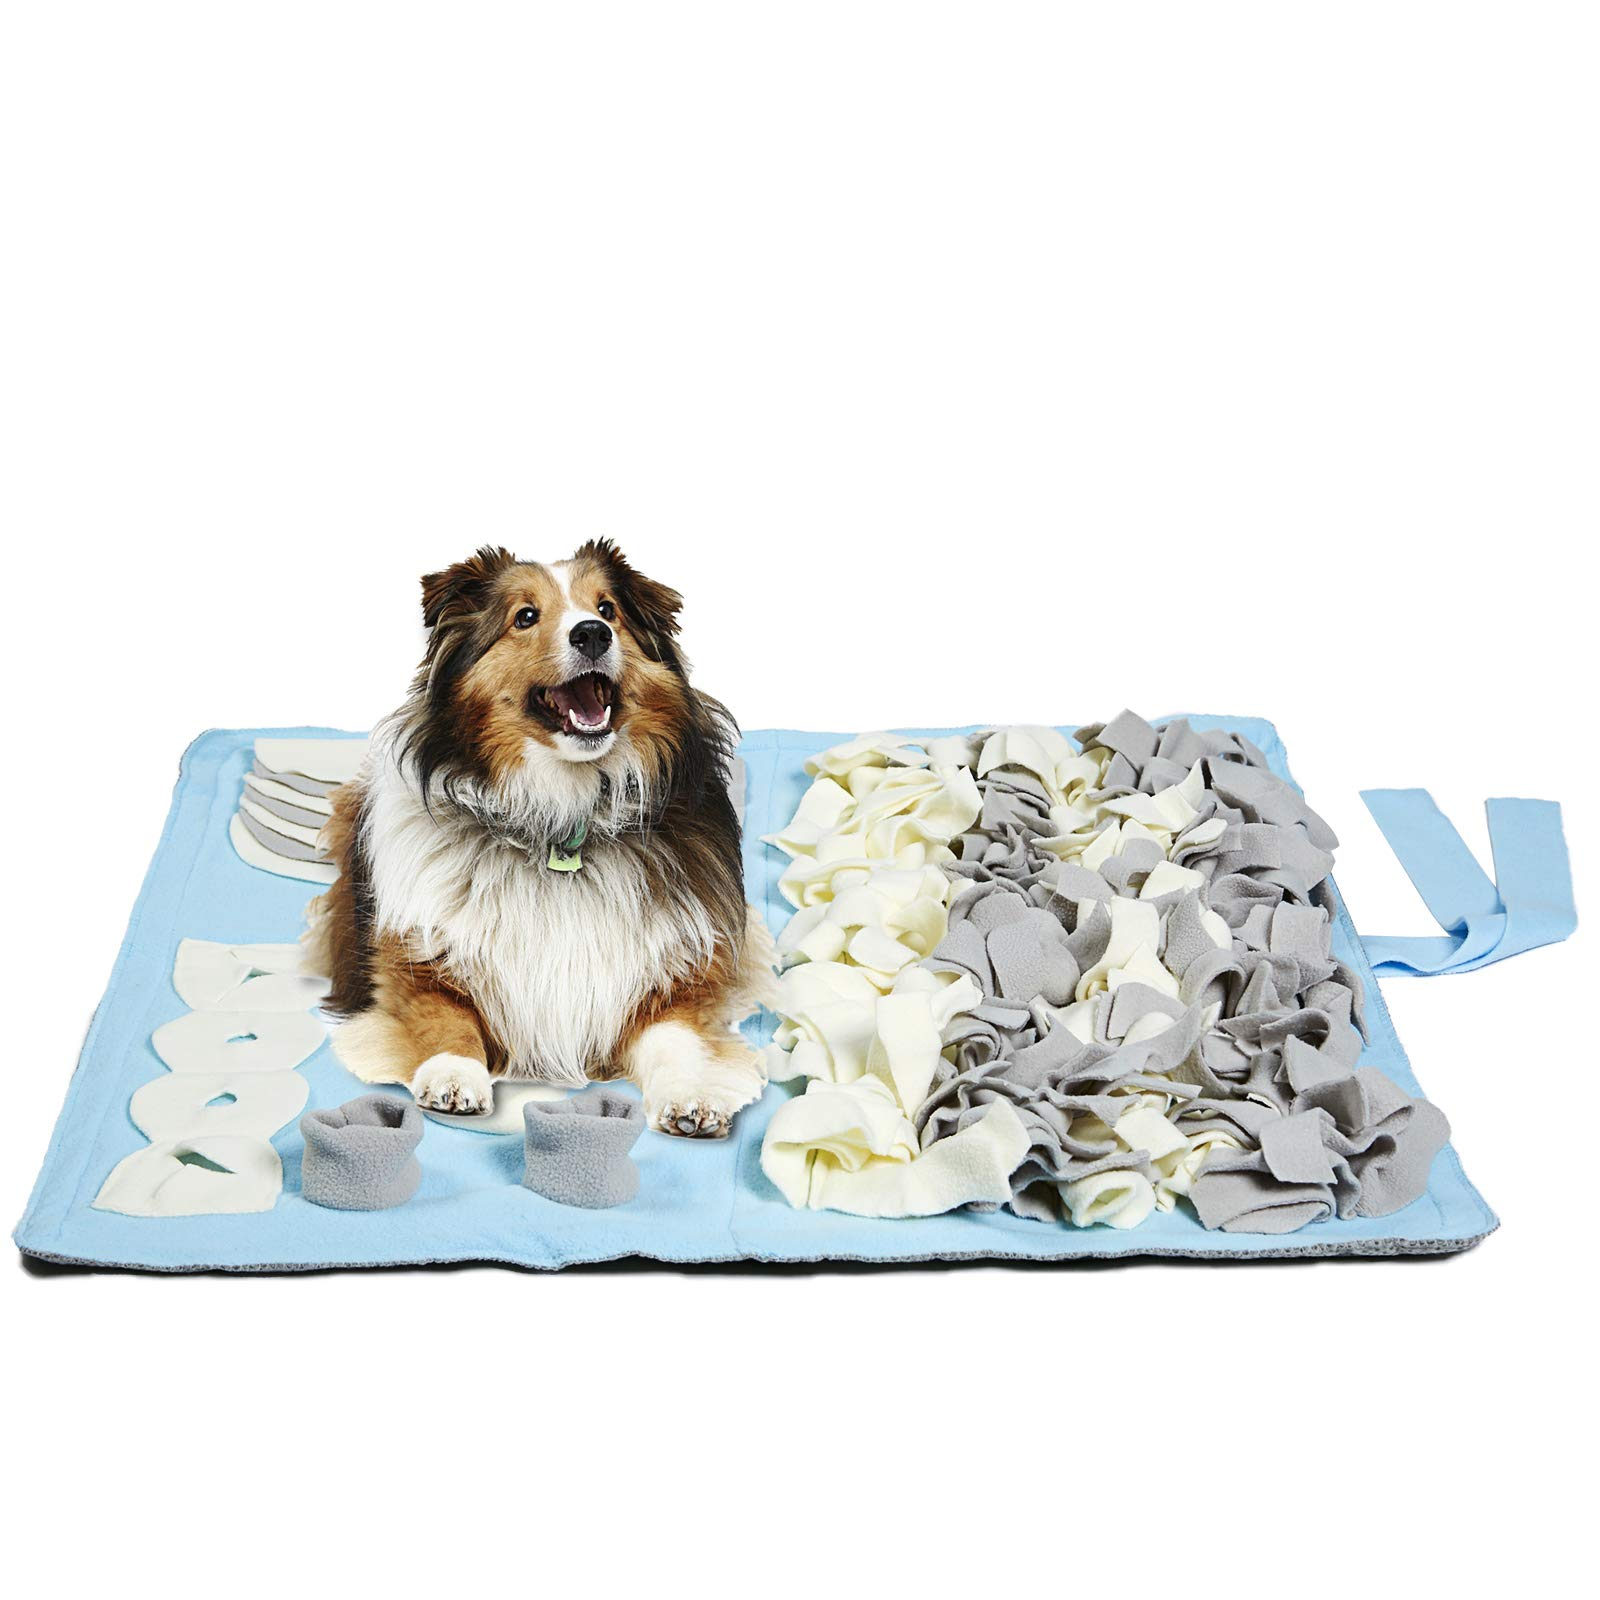 Petvins Dog Feeding Mat Snuffle Nose Work Training Foraging Mat Pet Activity Blanket Slow Feeder Bowl Stress Release Pad Blue